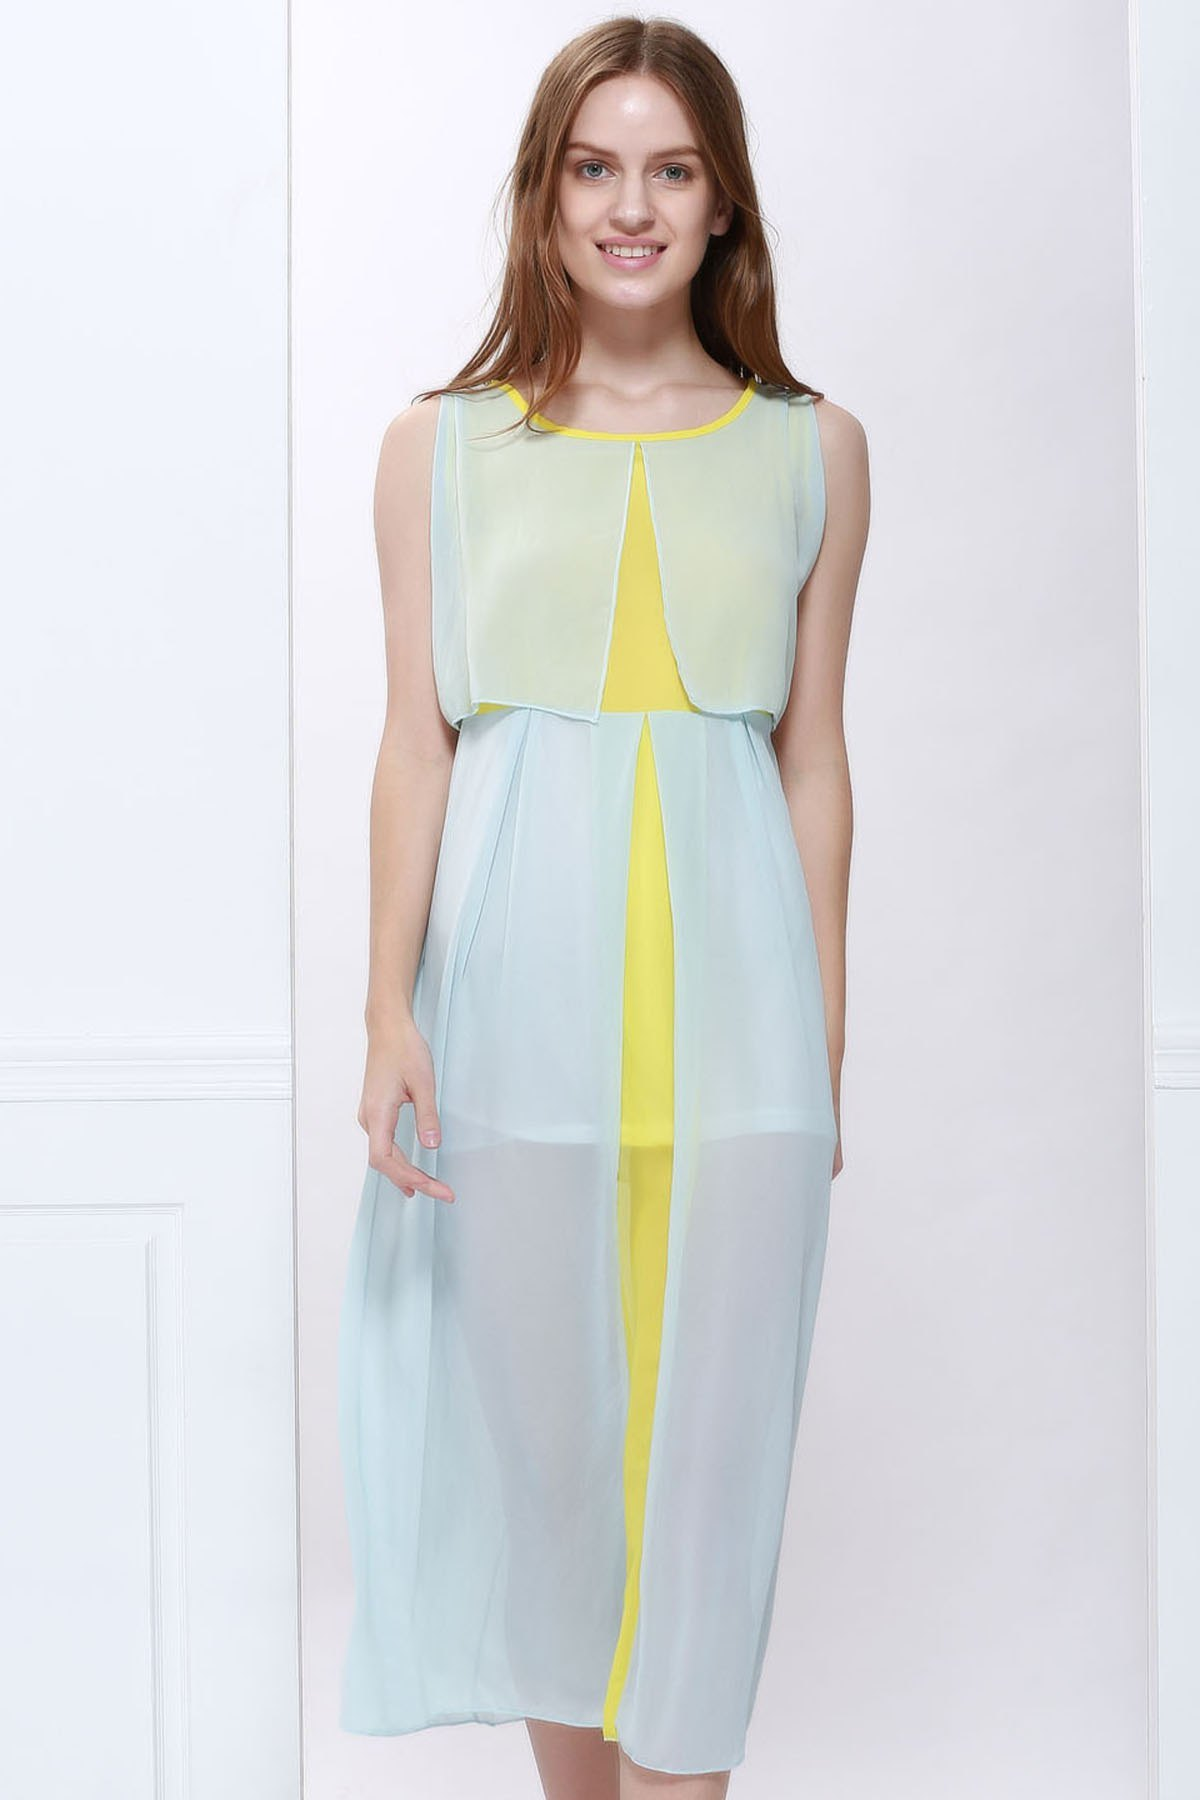 Sleeveless Scoop Neck High Waistline Stitching Cape-style Ladylike Women's Dress - AS THE PICTURE M